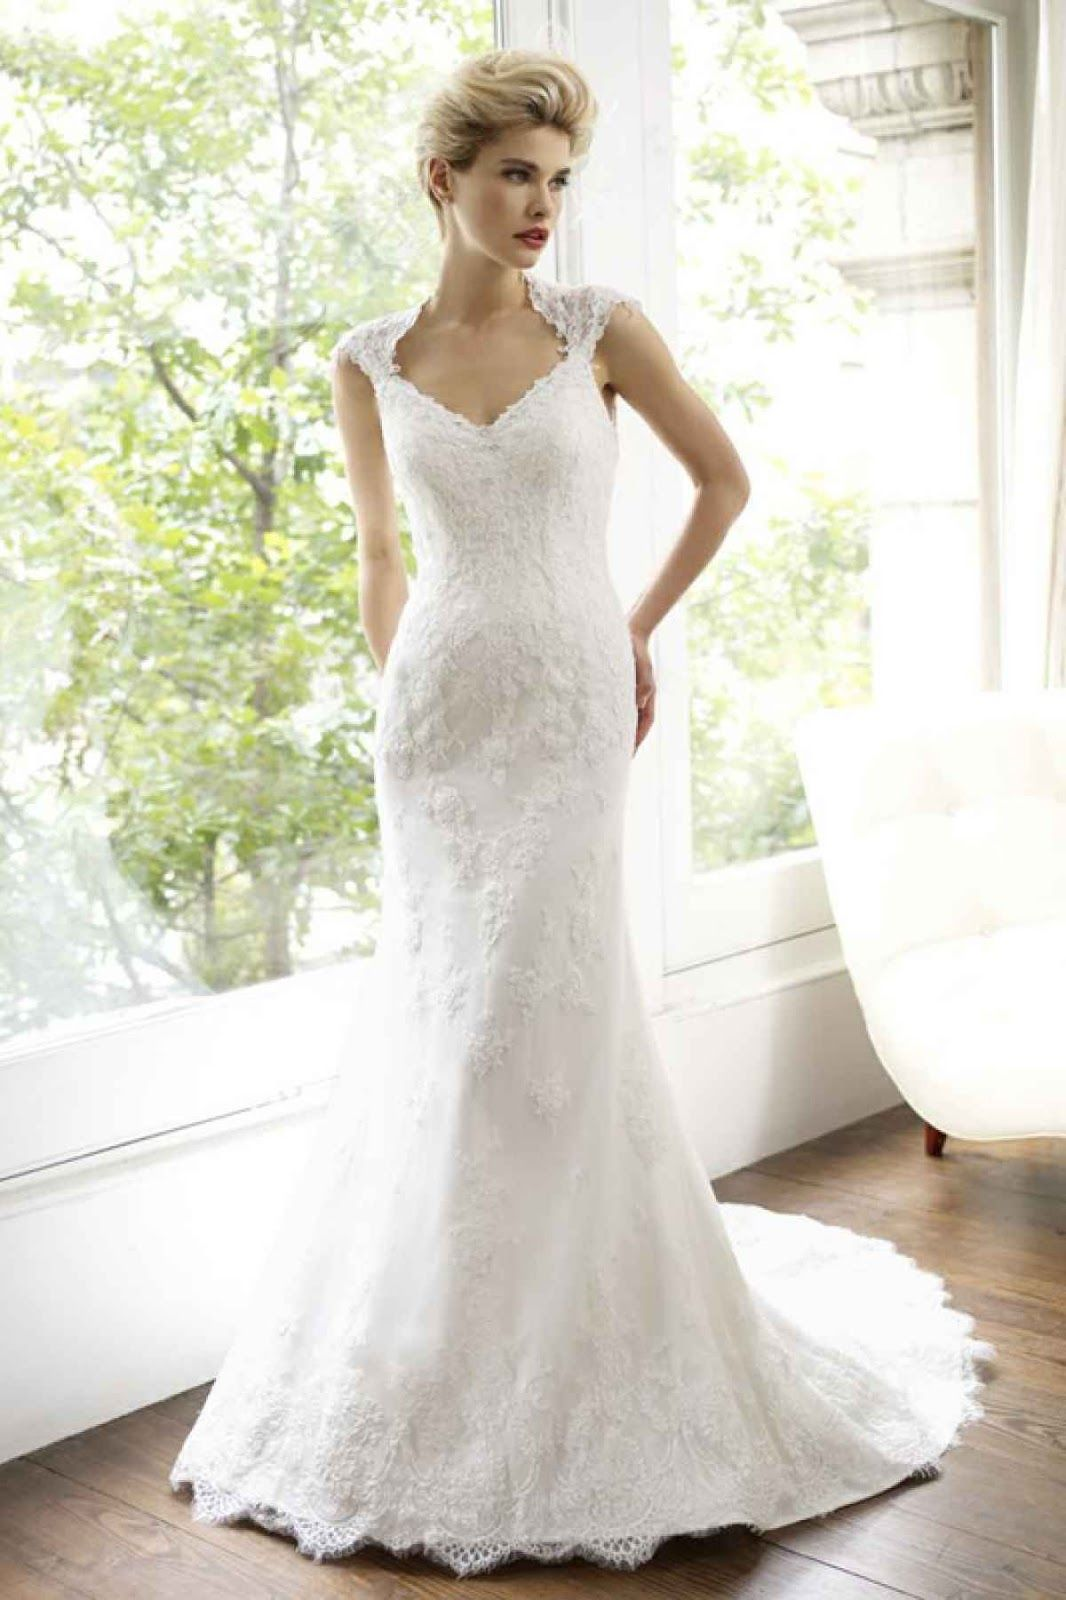 We offer brides all types of beaded lace wedding dresses that you ...